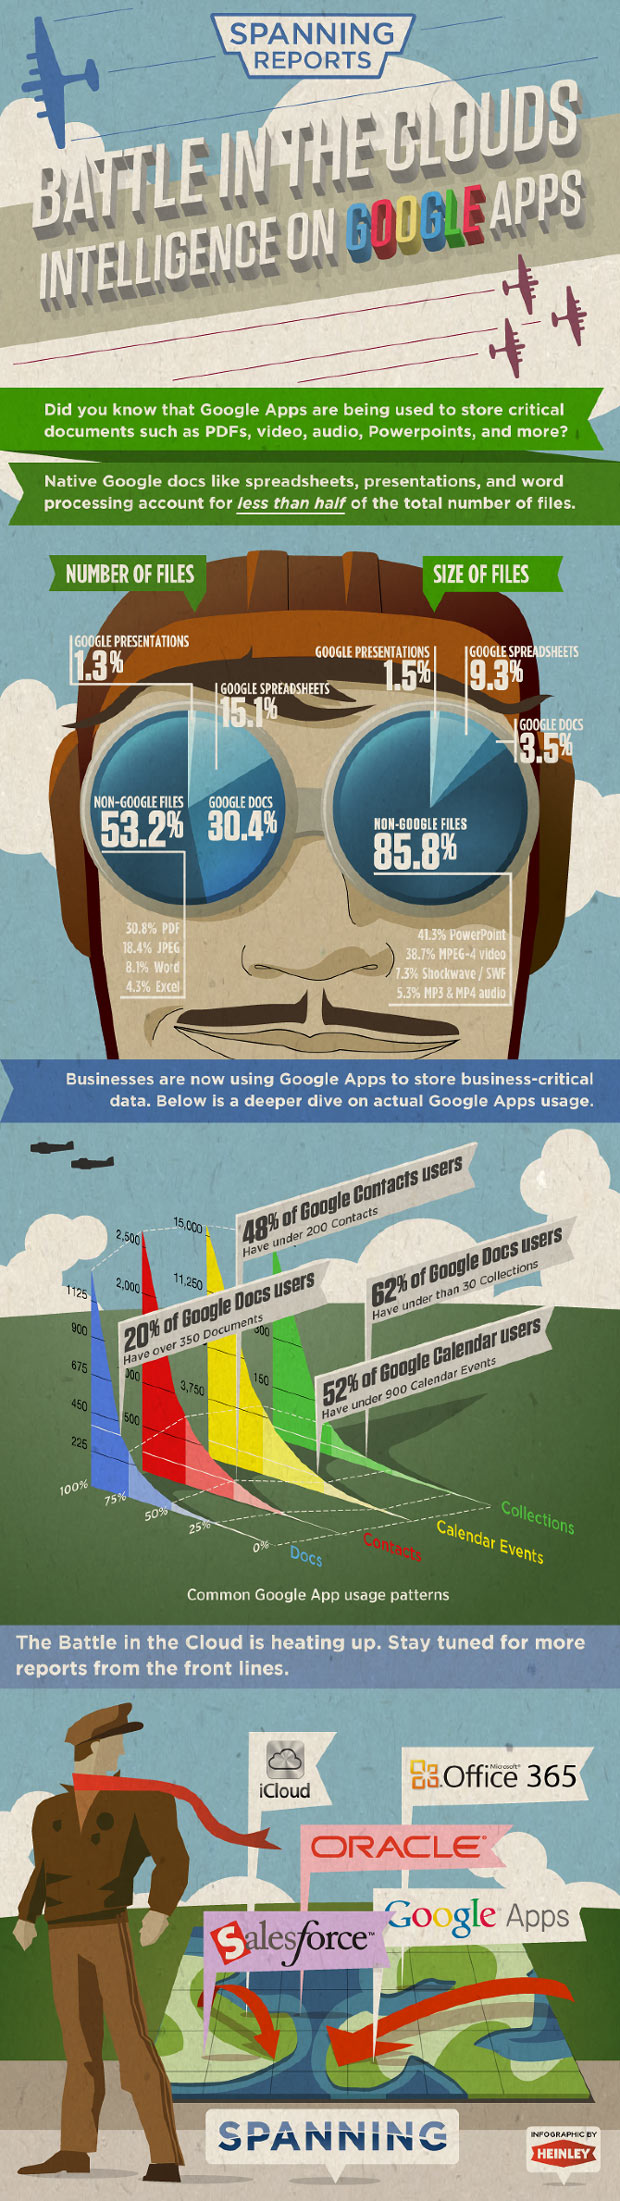 Battle in the clouds - Google App - Infographic